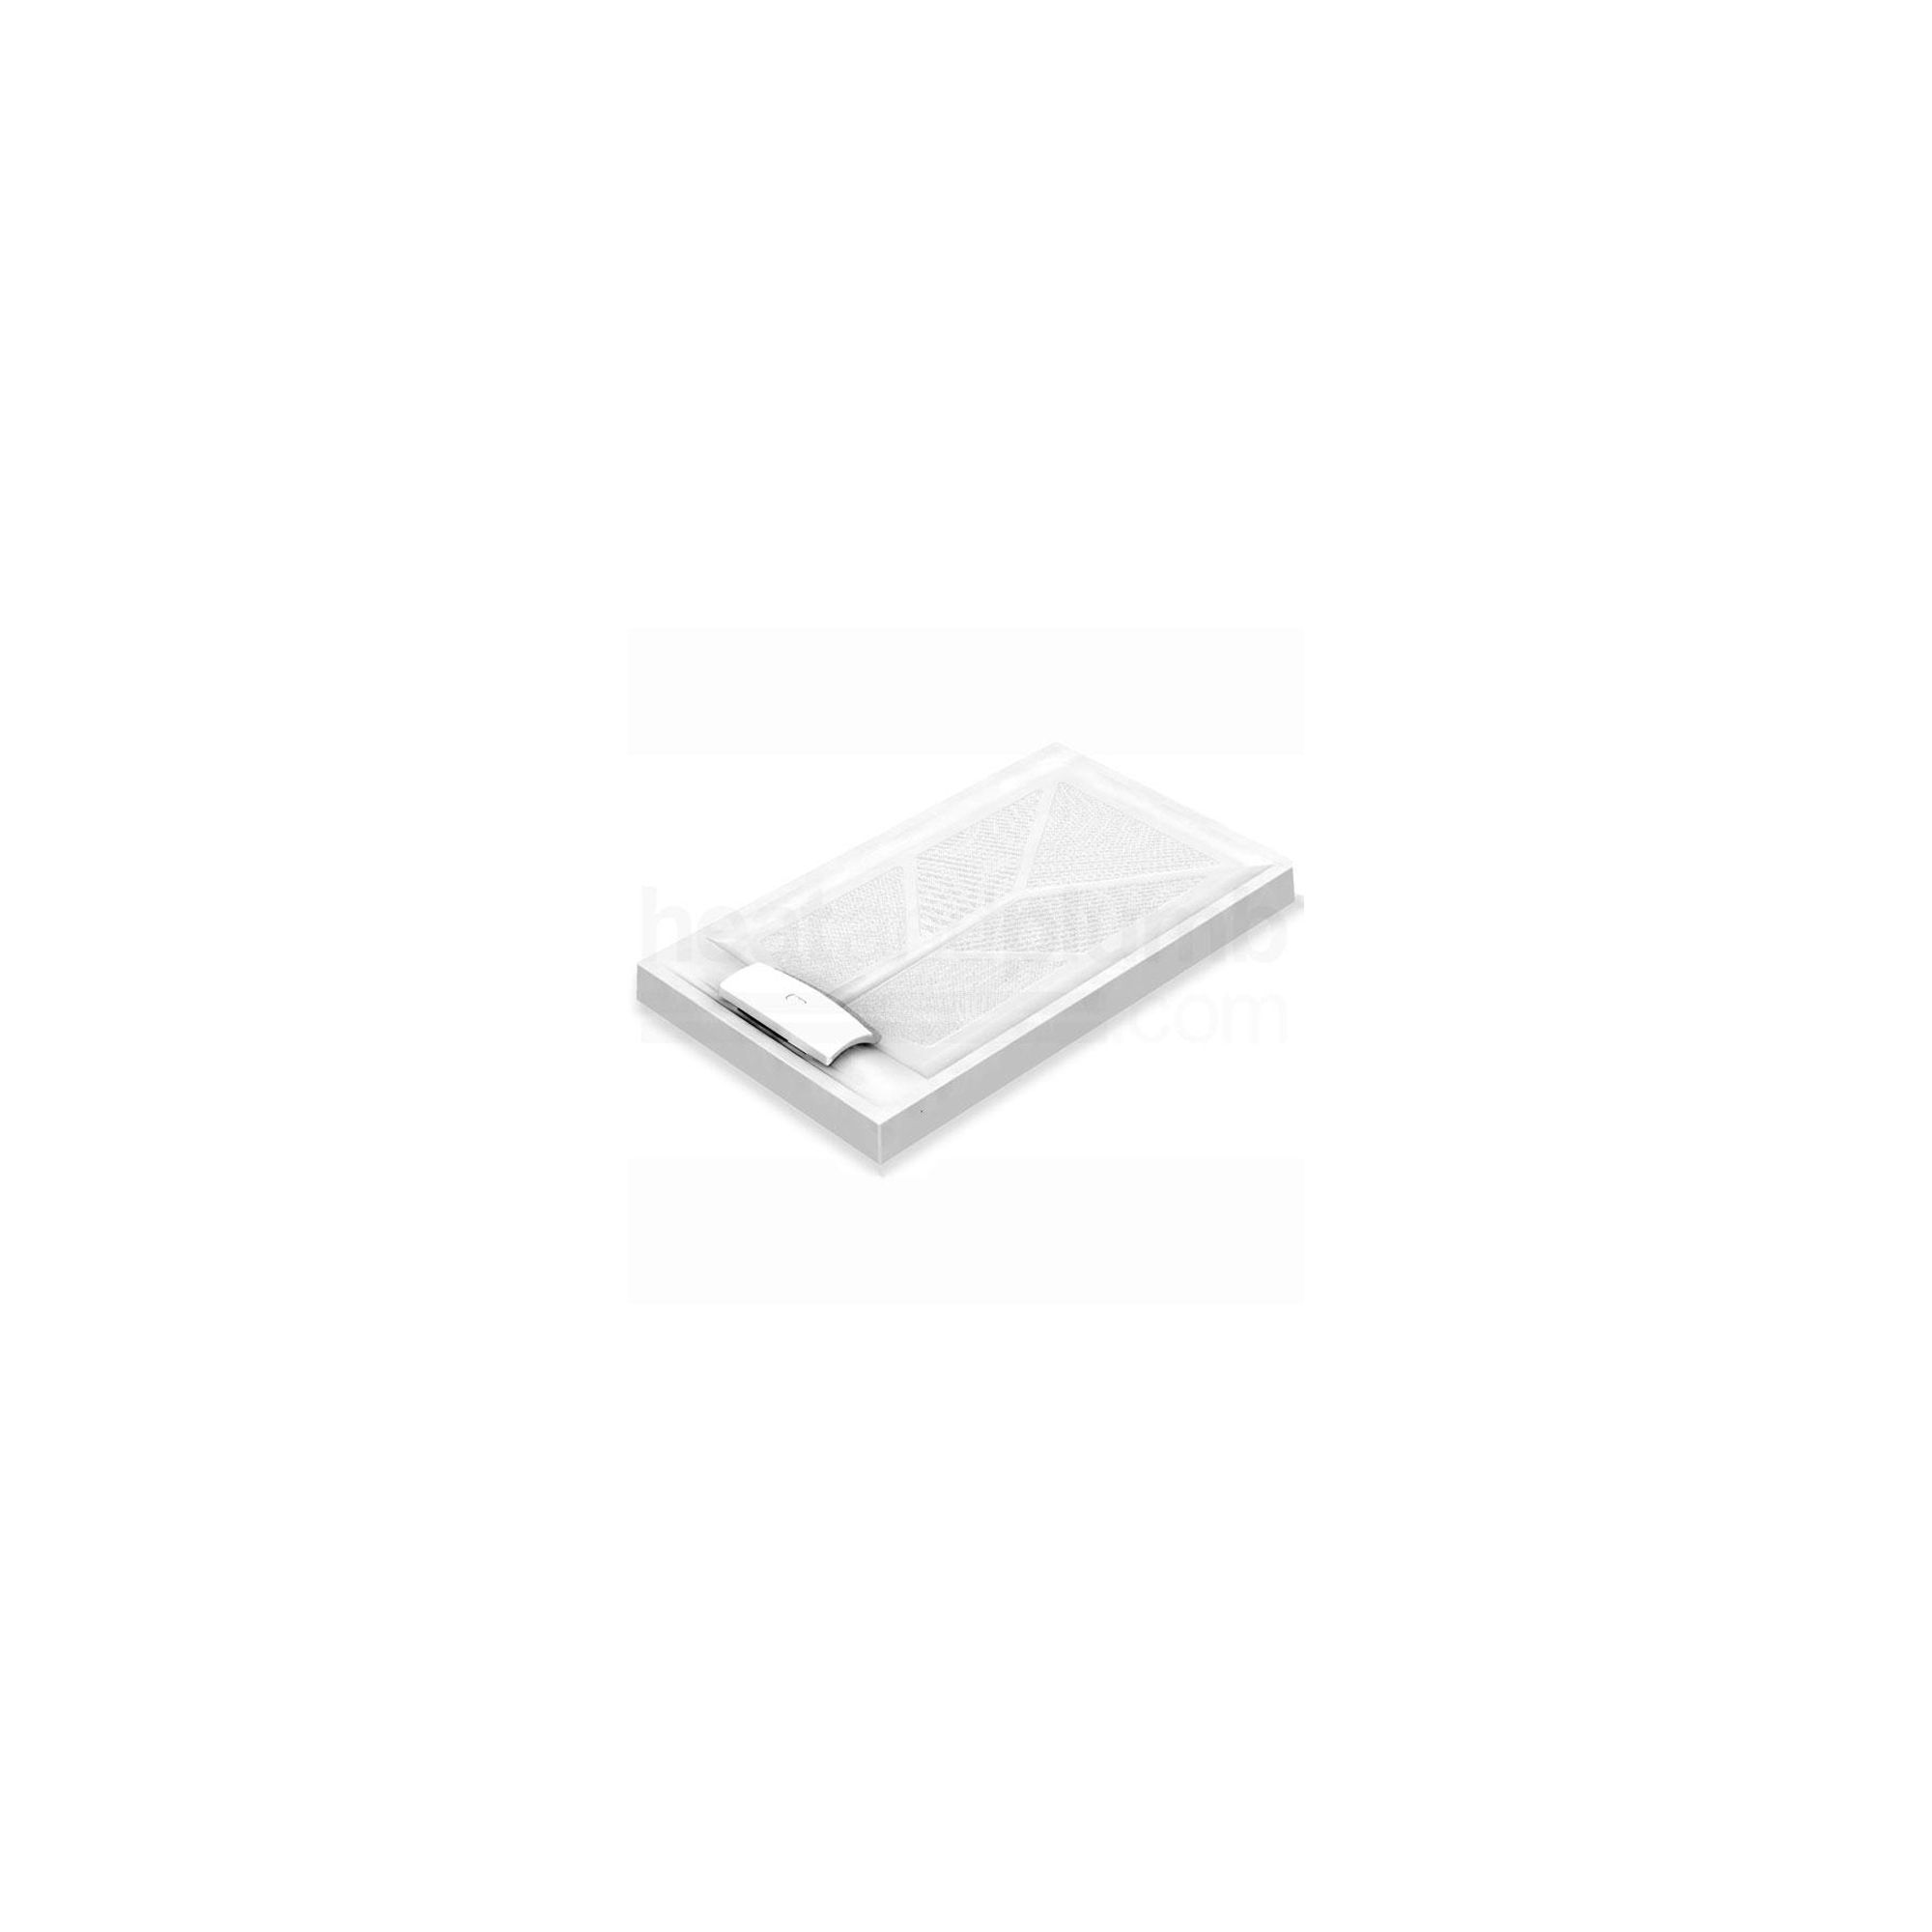 AKW Sulby Rectangular Shower Tray 1200mm x 760mm at Tesco Direct